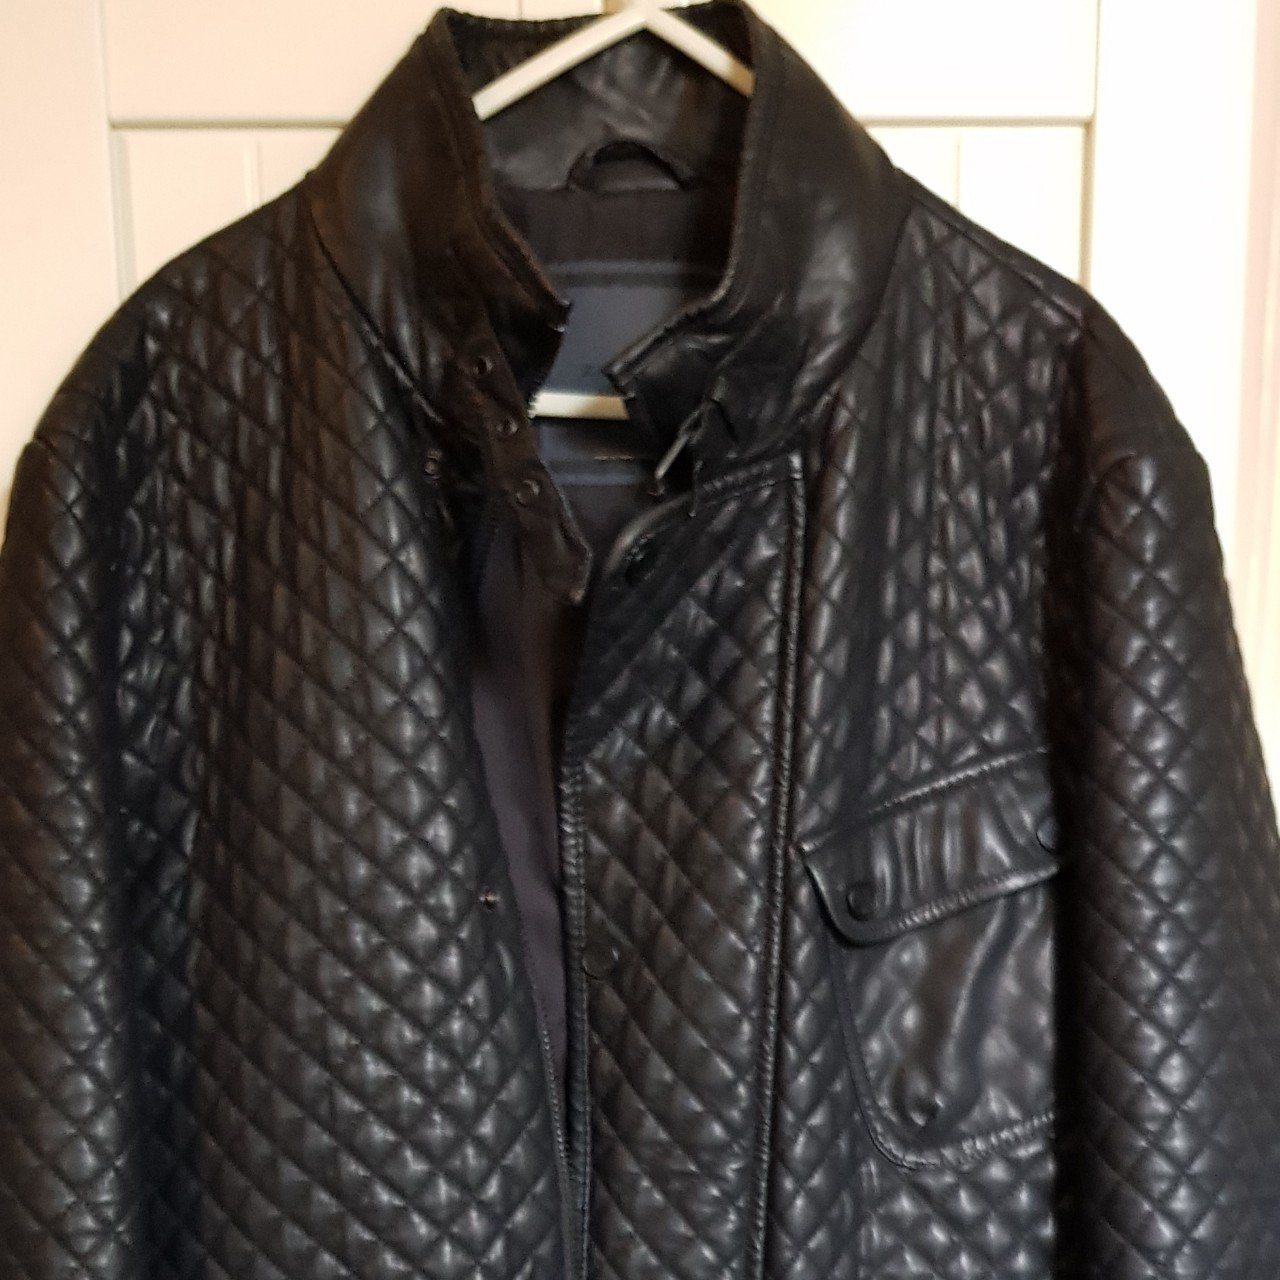 Zara Mens Faux Leather Jacket For Sale Used But In Good Depop